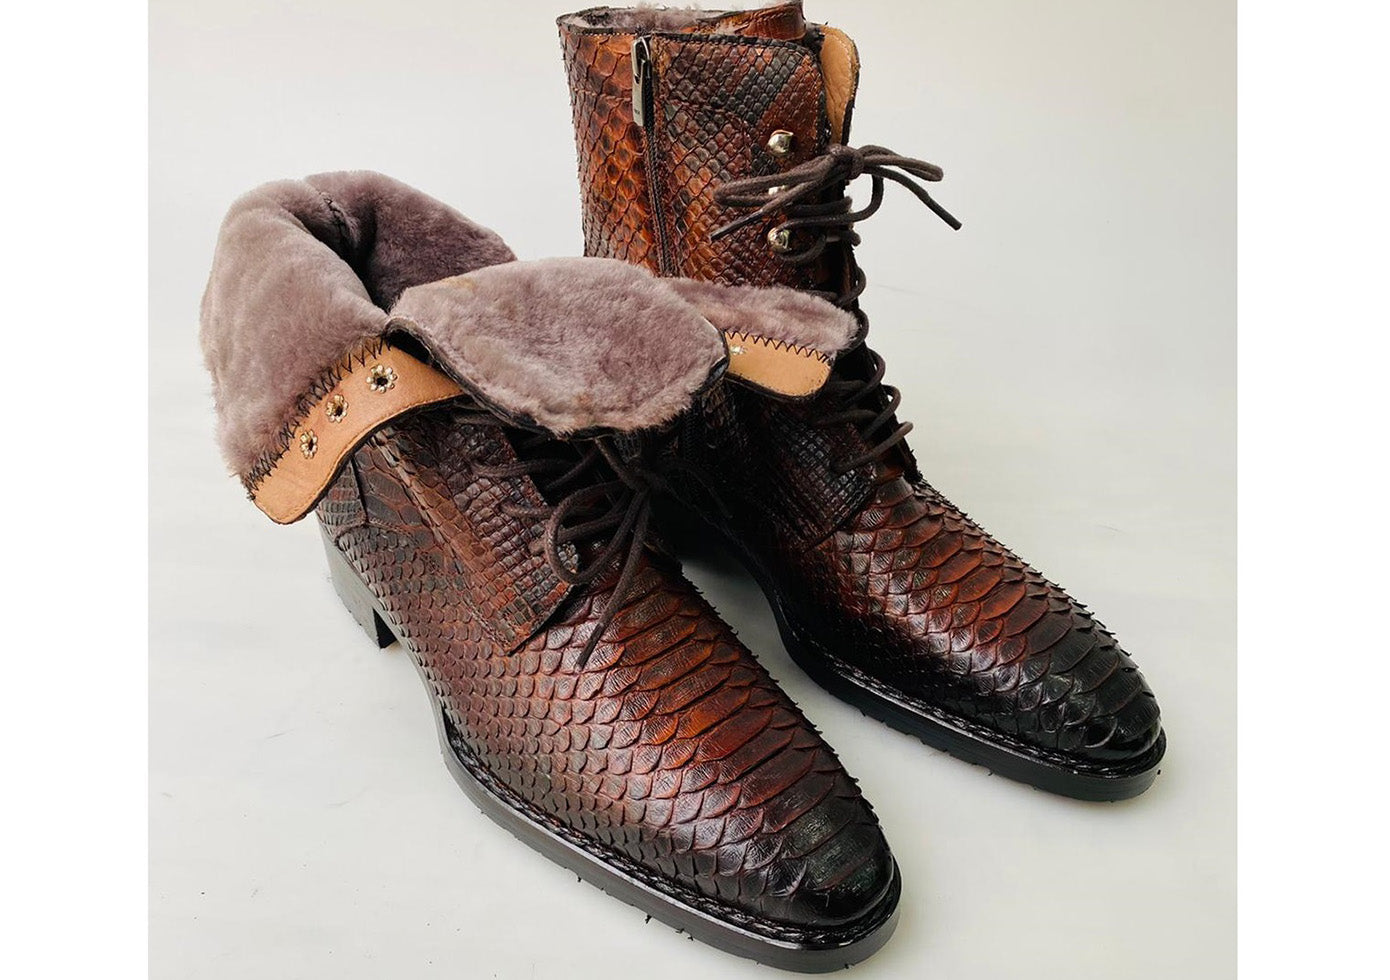 New TucciPolo Mens Winter Luxury Brown Boots Handcrafted with Real Python Leather and Fur Lining